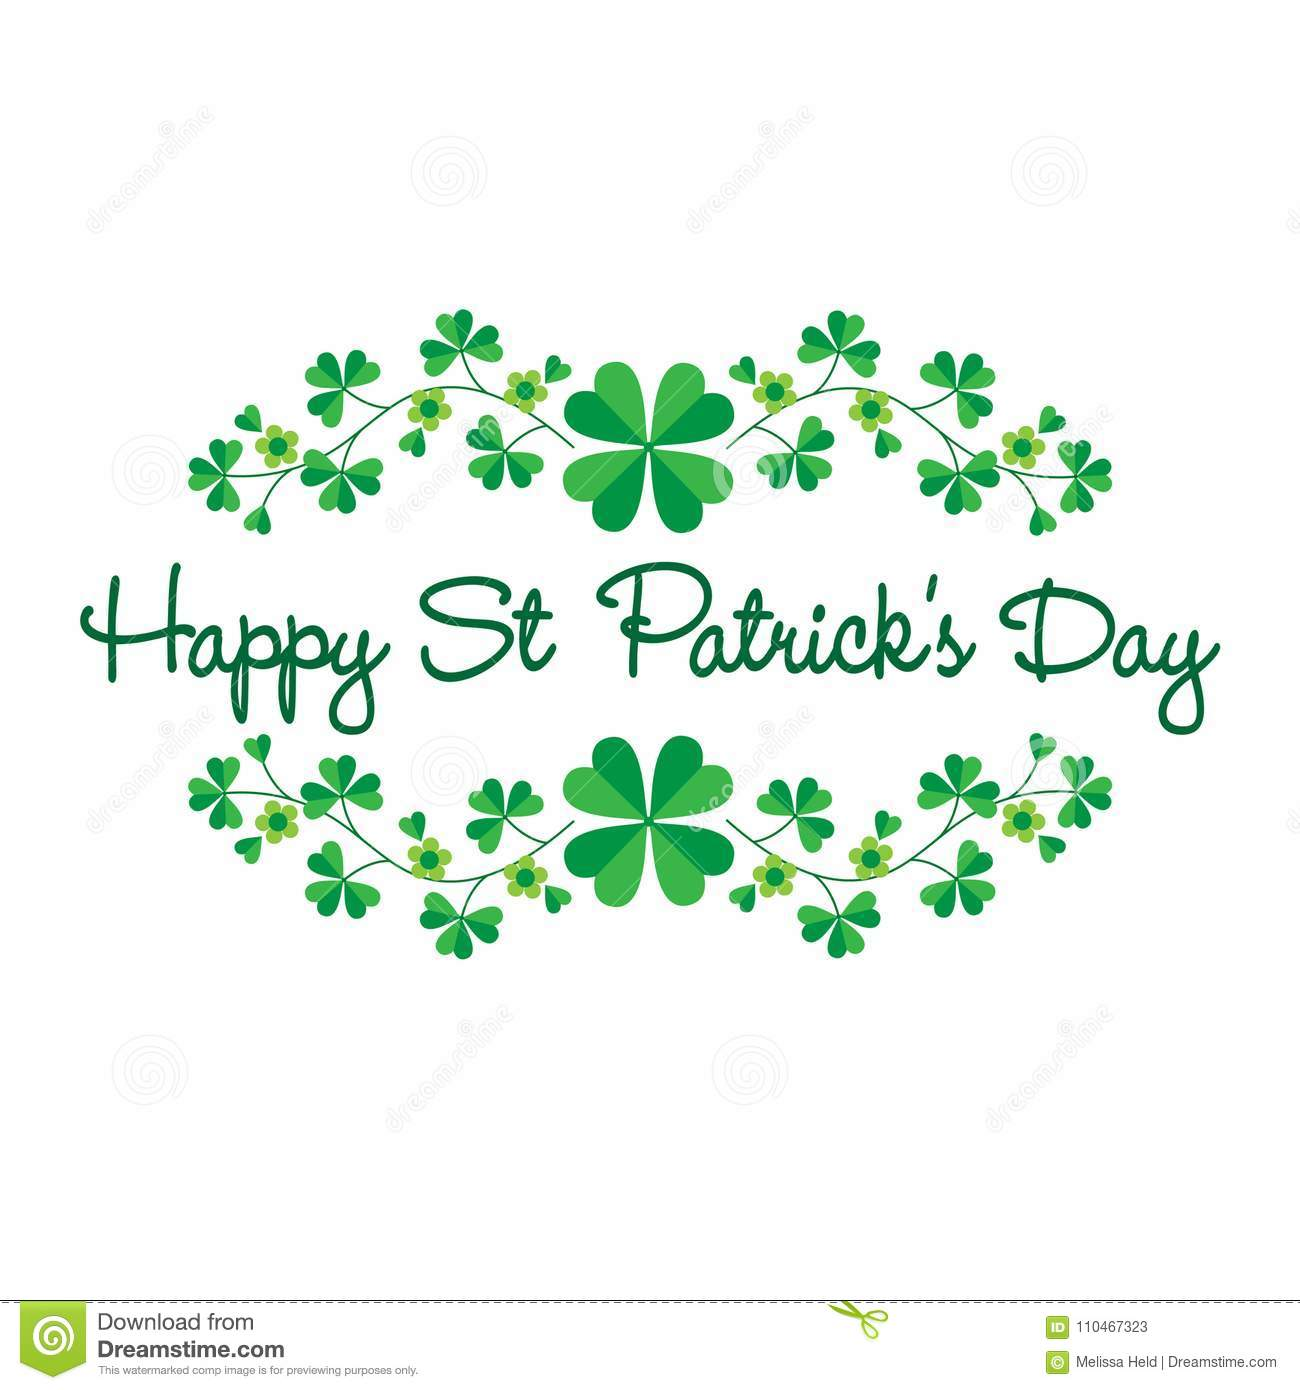 Saint Patricks Day Graphic With Border Pattern Stock Vector Illustration Of Leaf Decoration 110467323